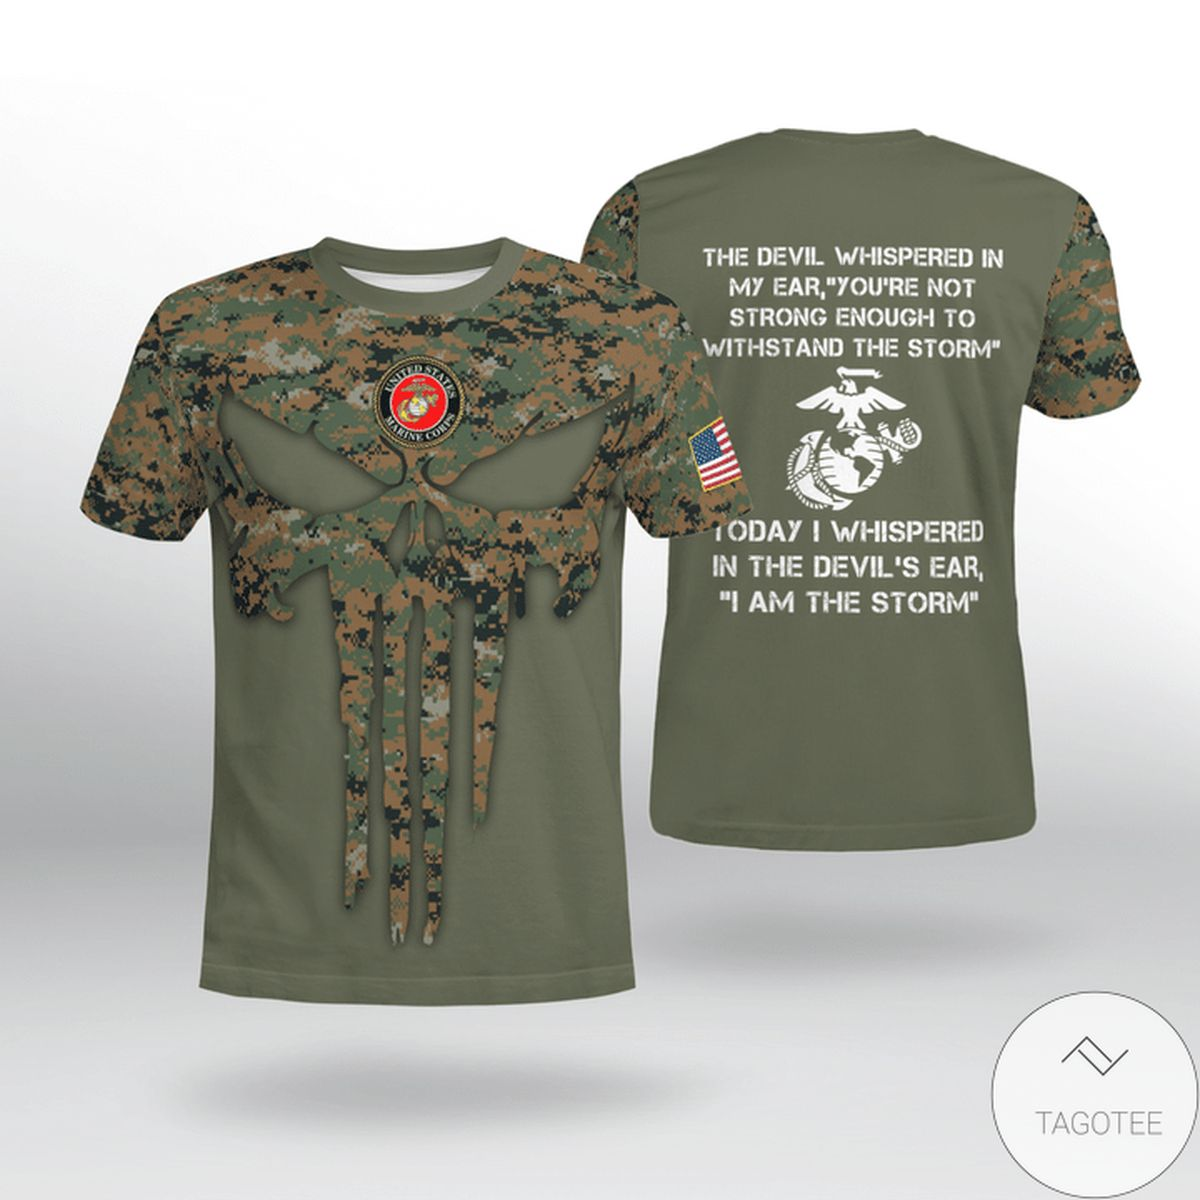 USMC The Devil Whispered In My Ear You Are Not Strong Enough To Withstand The Storm Shirt